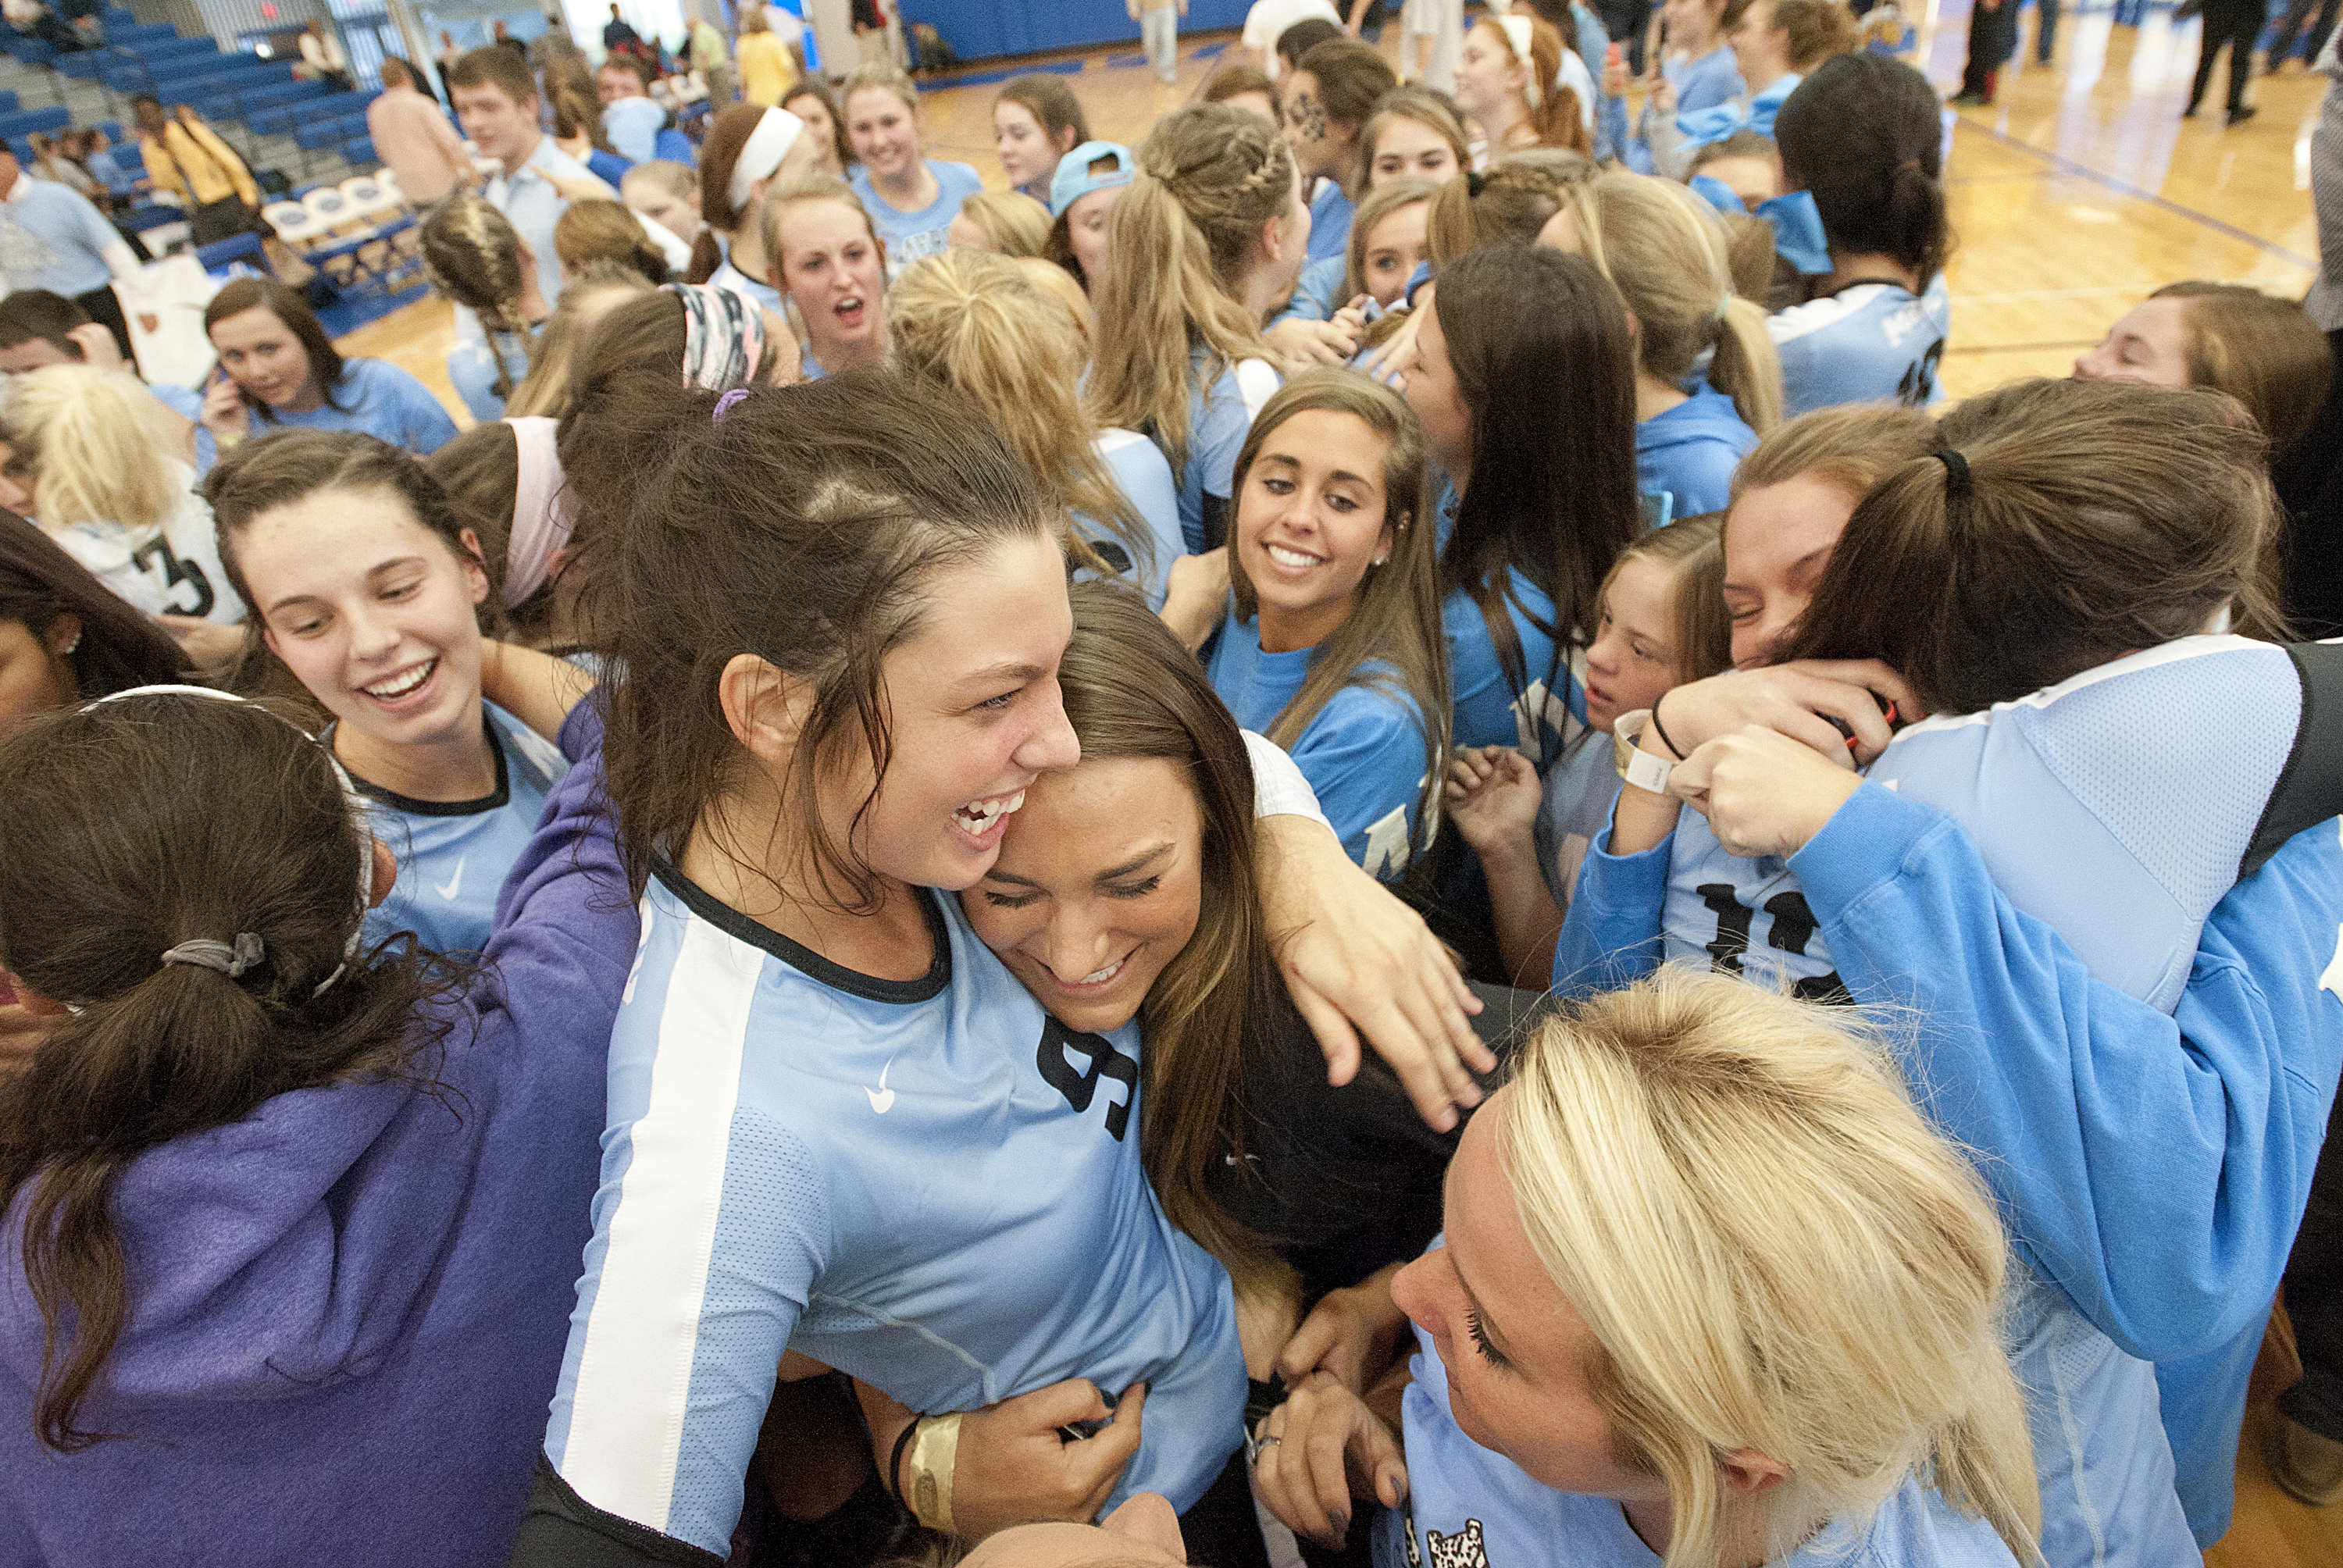 Mercy Academy Jaguars' middle blocker Alexandra Hamrick, center, and her teammates are swarmed with hugging fans, friends and family members moments after Mercy won the state volleyball championship. (By David R. Lutman / Special to The Courier-Journal)